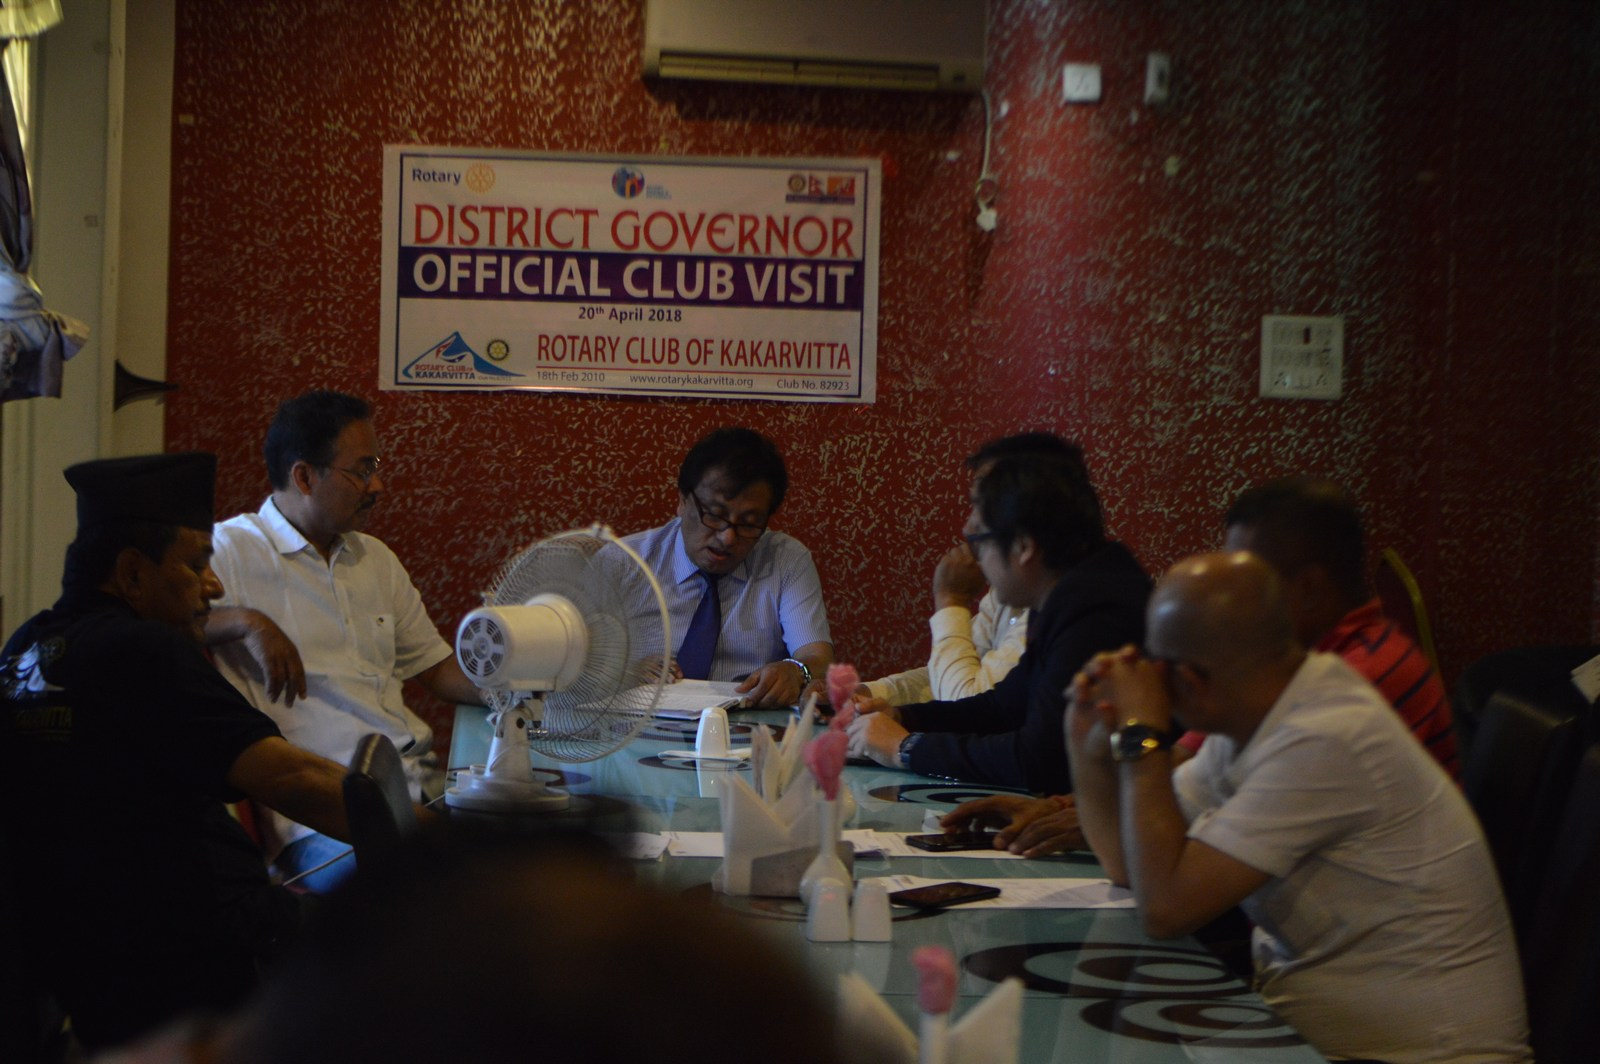 District-Governors-Official-Club-Visit-2017-18-Rotary-Club-of-Kakarvitta-8